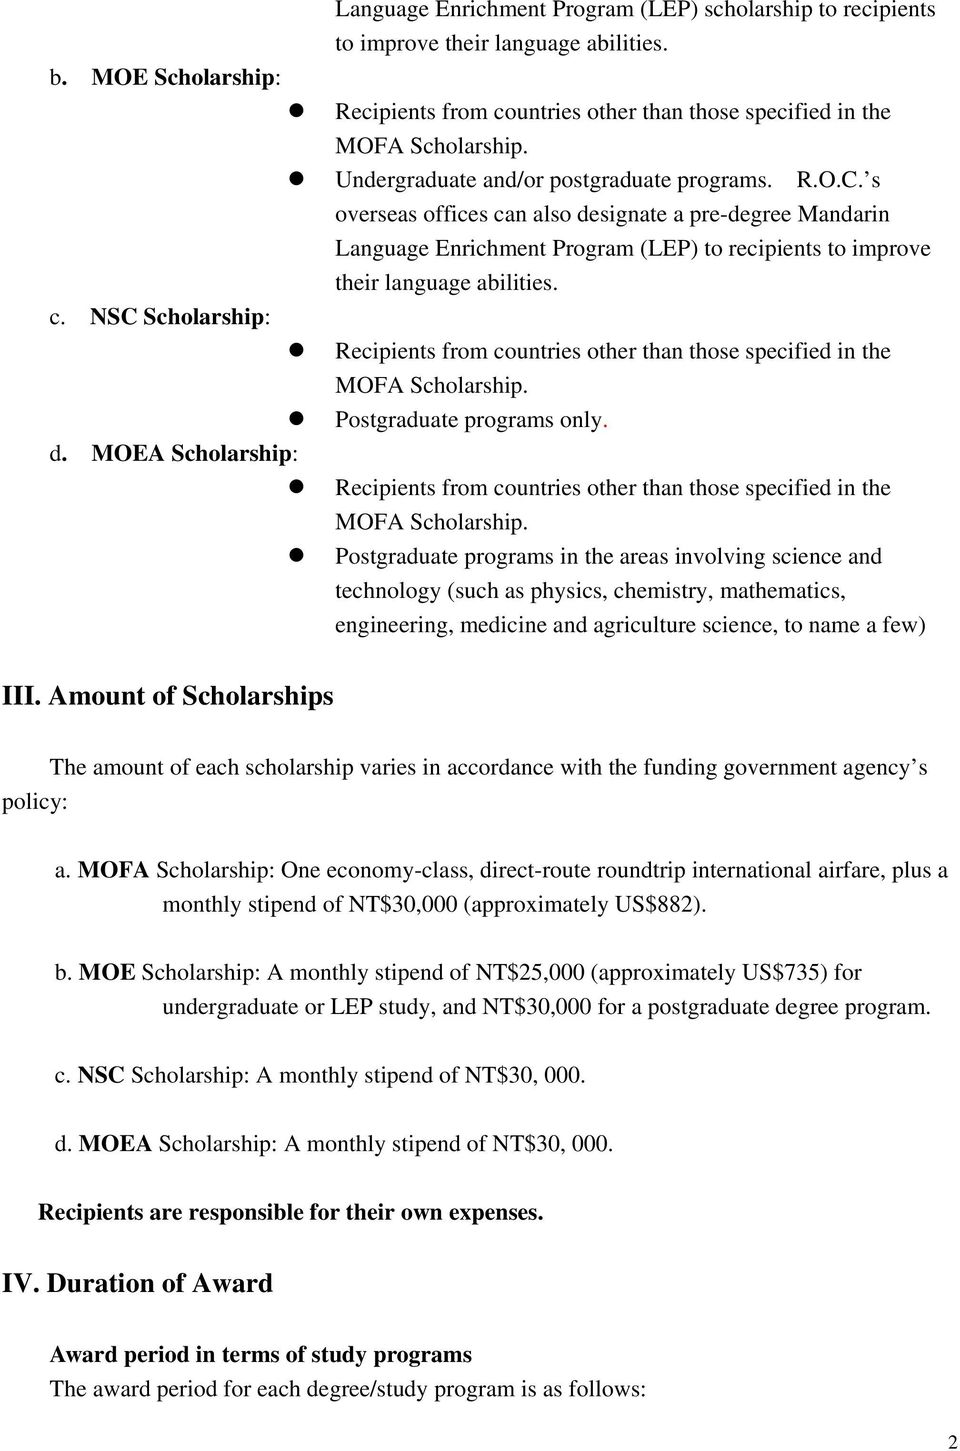 Postgraduate programs only. d. MOEA Scholarship: Recipients from countries other than those specified in the MOFA Scholarship.